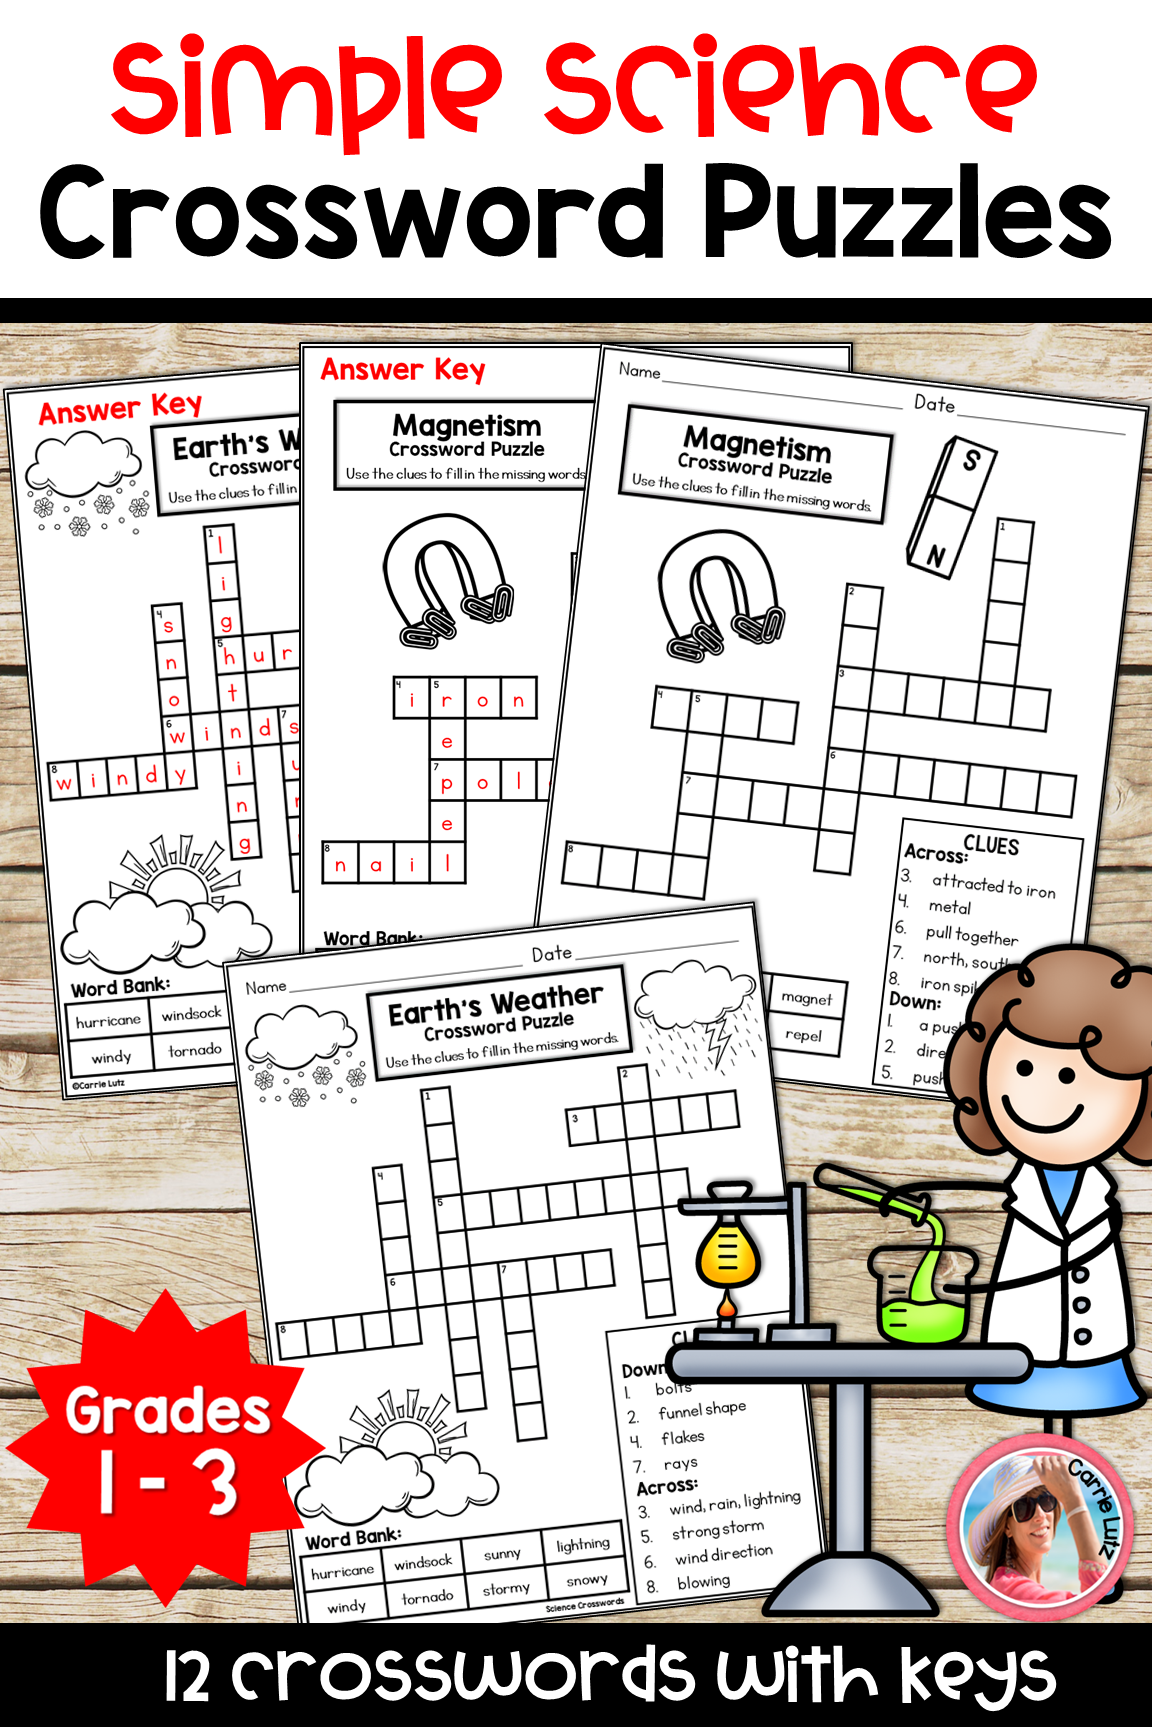 Simple Science Crossword Puzzles Distance Learning Science Puzzles Crossword Puzzles Fun Science